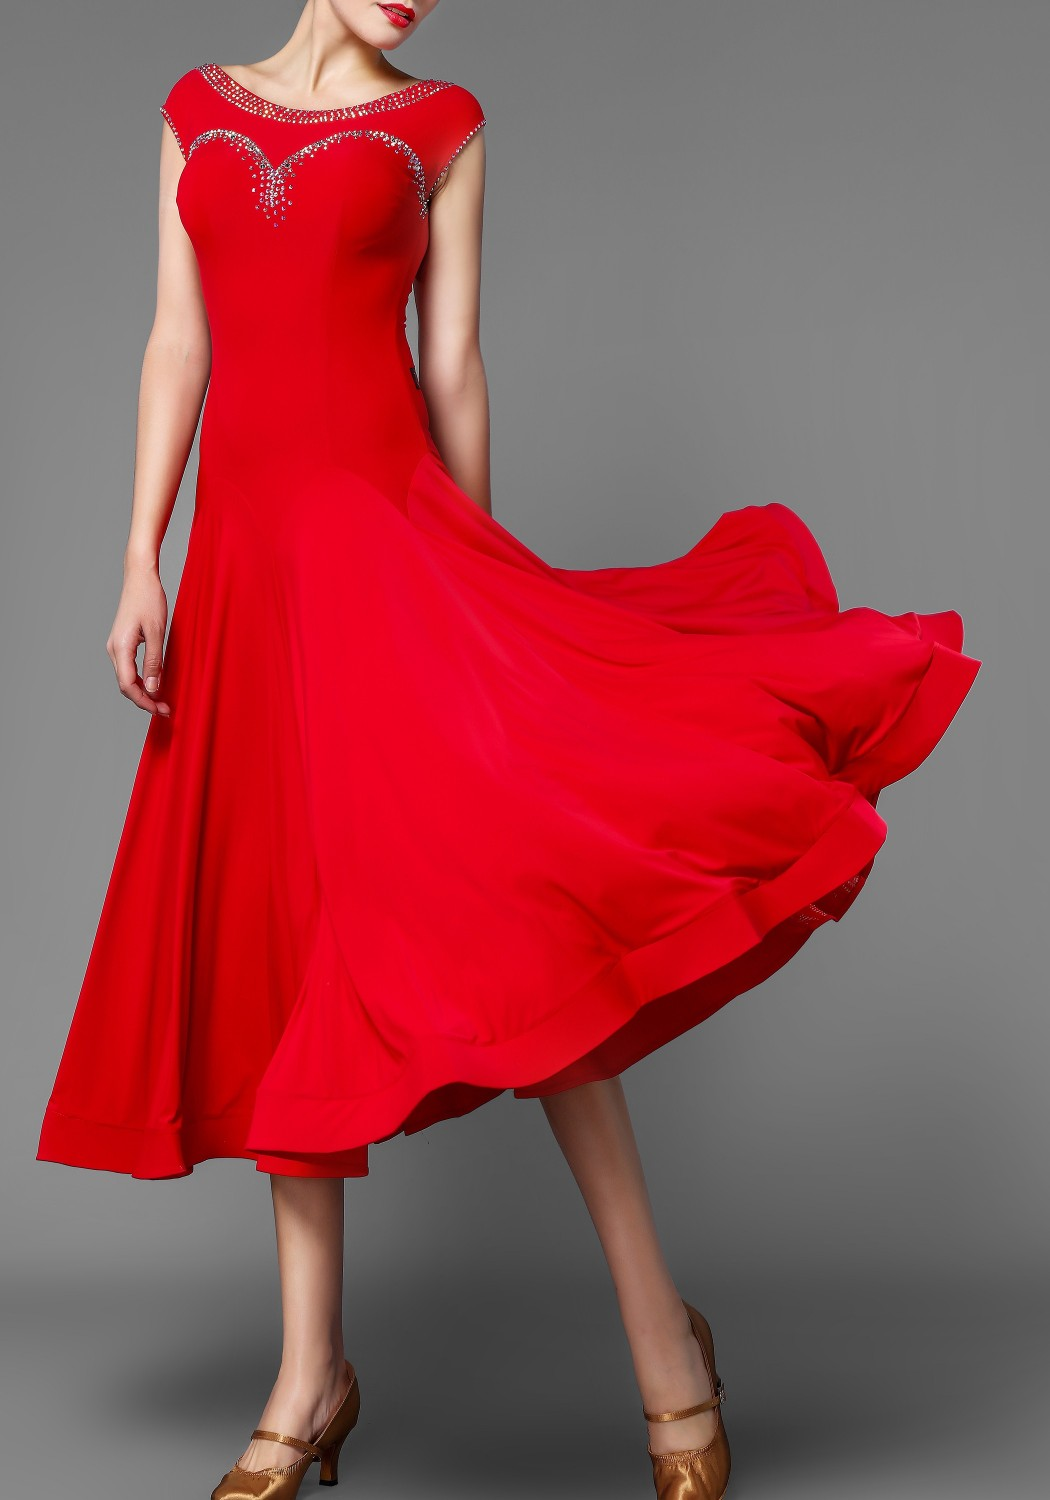 Red Crepe Stoned Ballroom Smooth Practice Dress